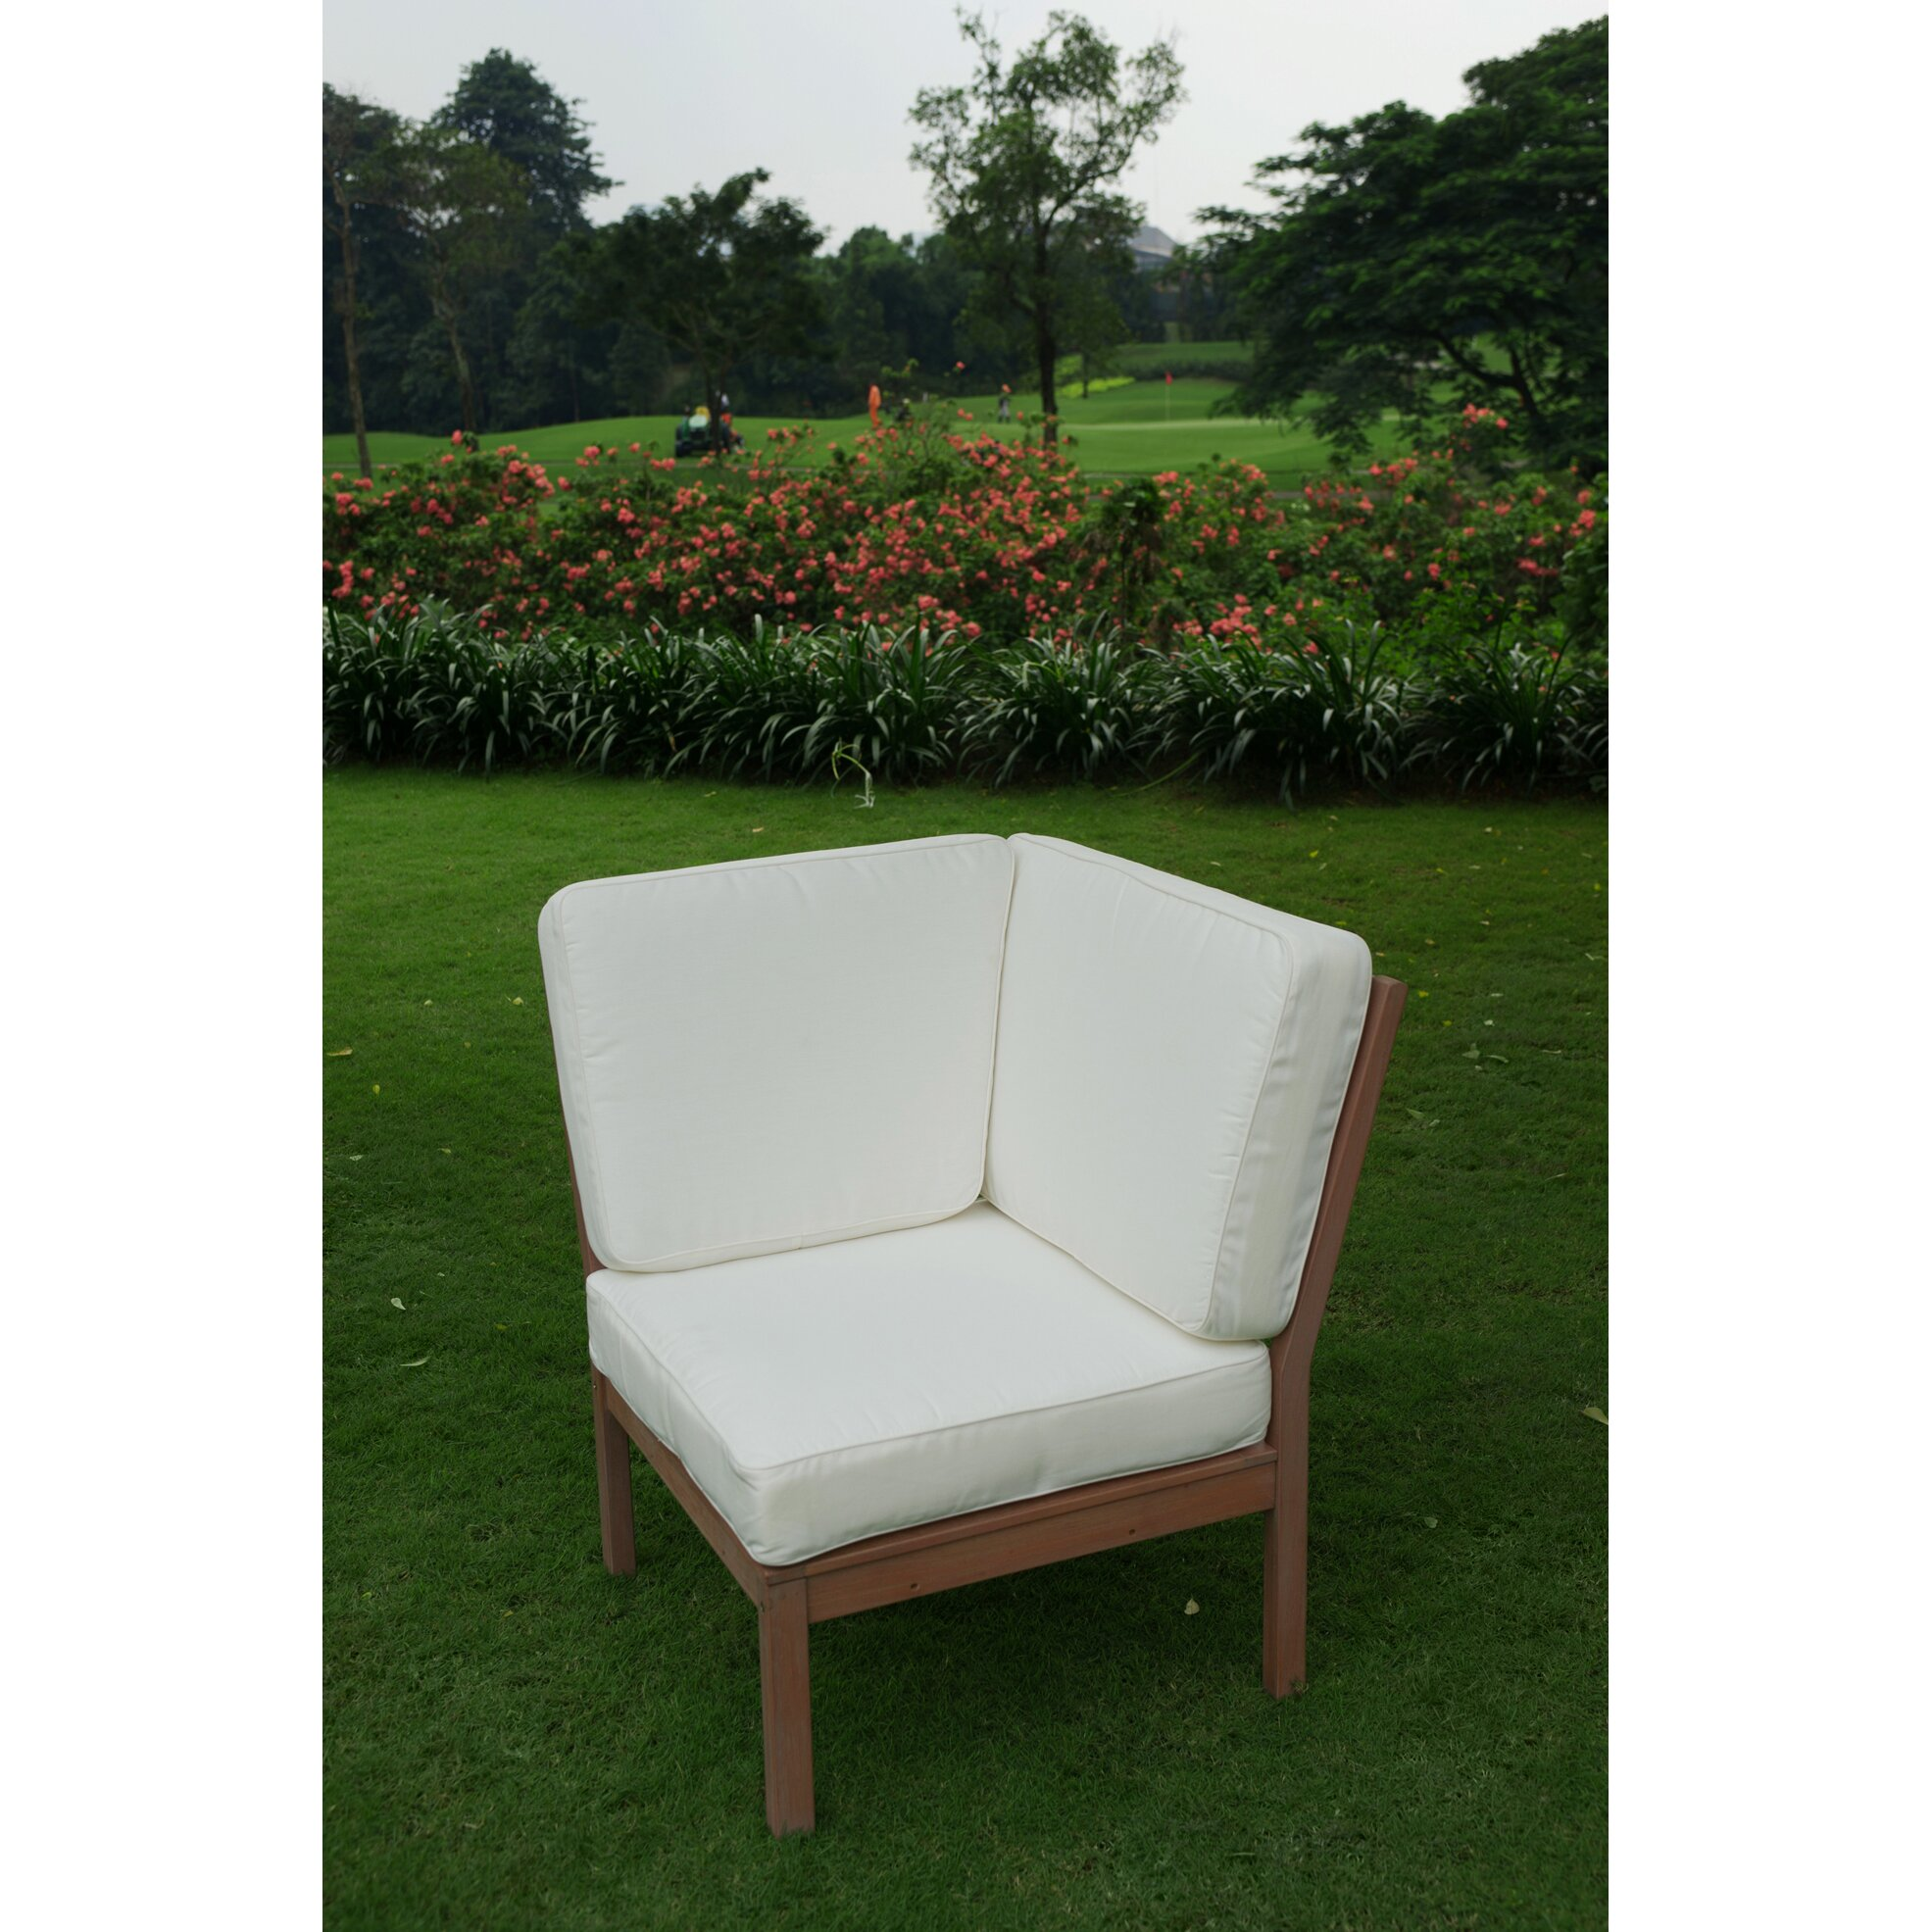 Cambridge Casual Willow Corner Lounge Chair with Cushion